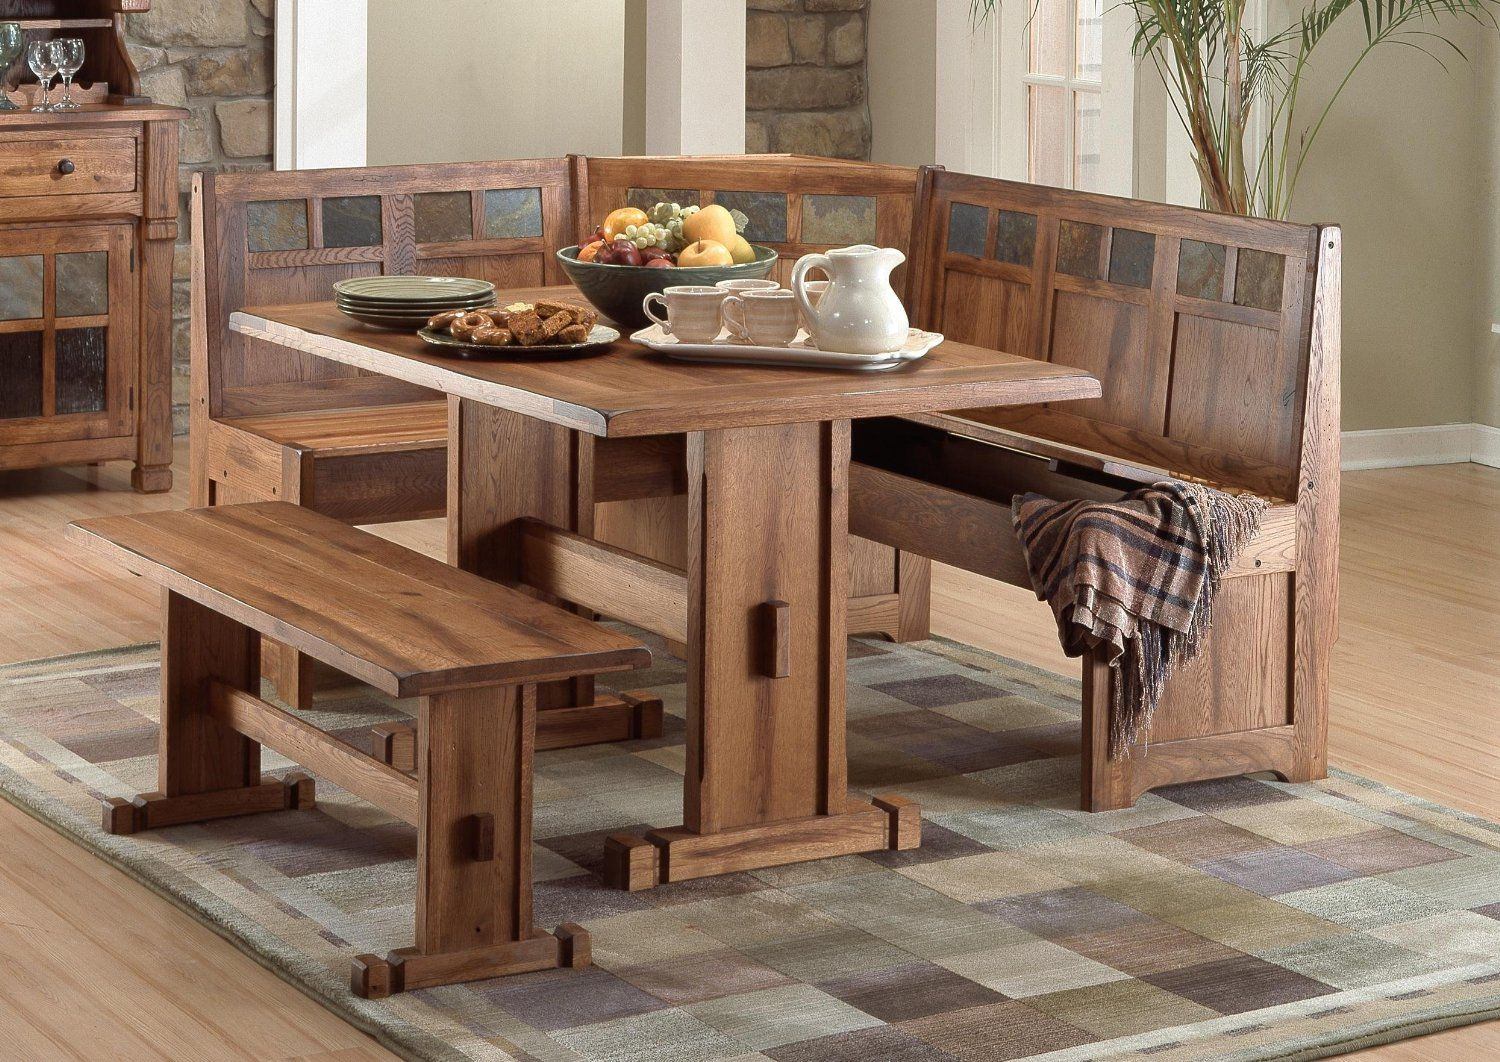 Corner Kitchen Furniture 1000 Ideas About Corner Kitchen Tables On Pinterest Corner